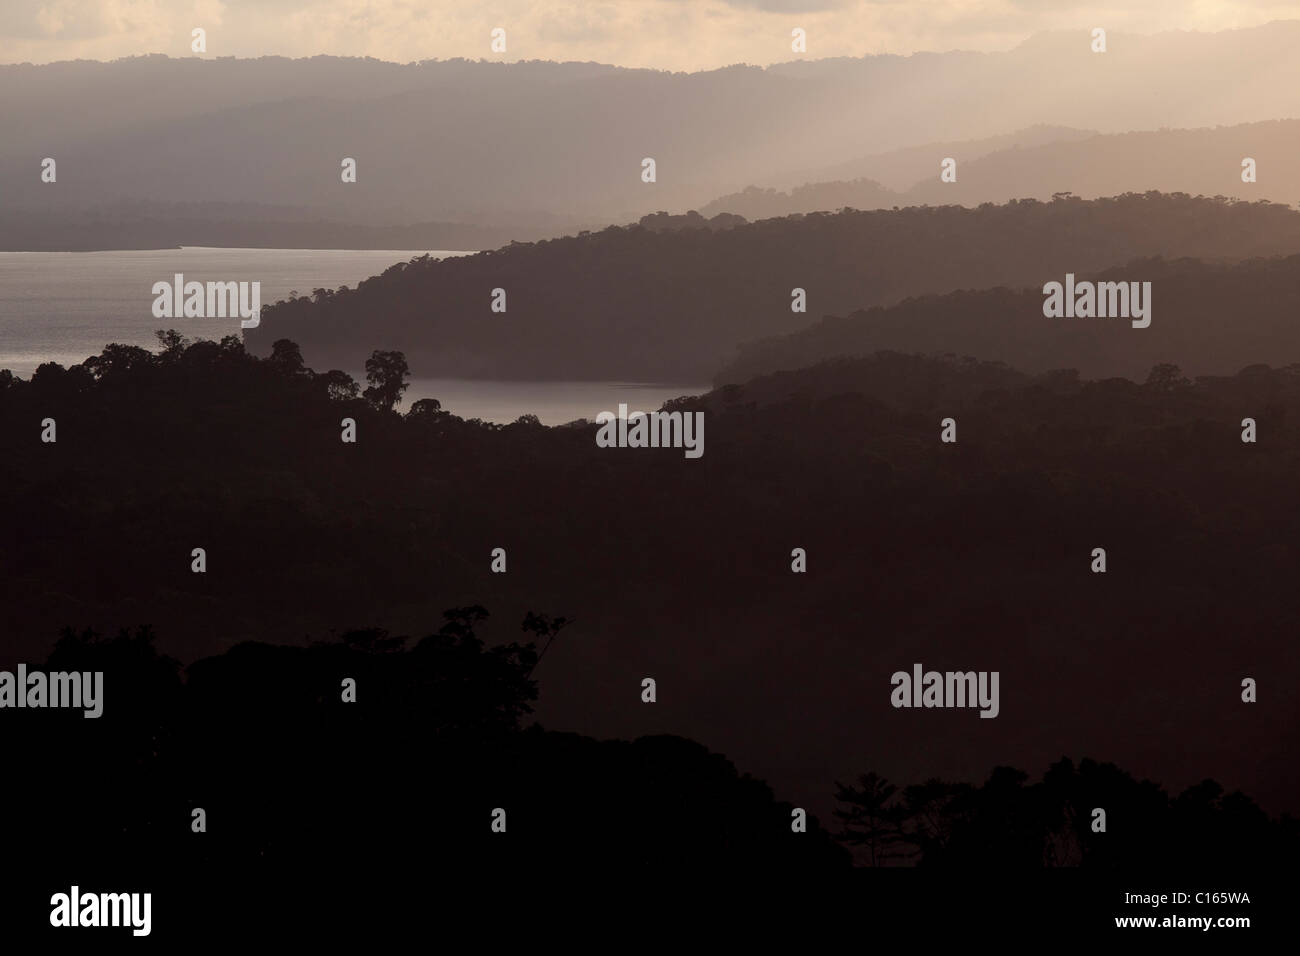 The Osa Peninsula at dusk, thousands of acres of primary rain forest meeting the ocean, Costa Rica. - Stock Image